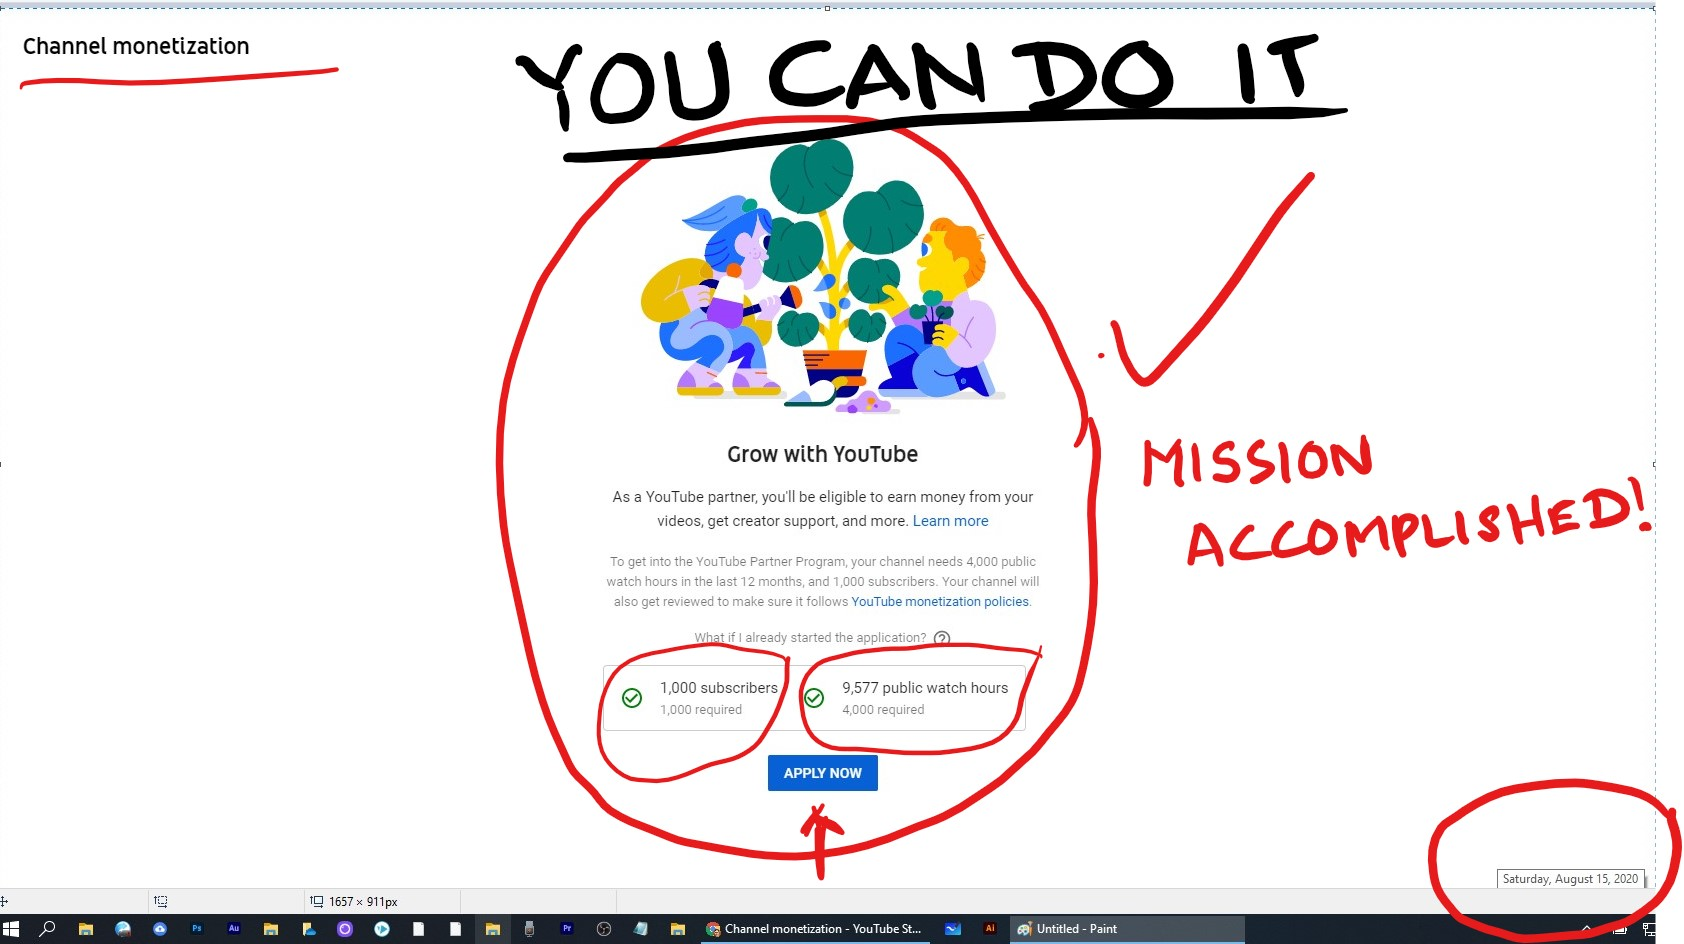 """[IMAGE] """"You Can Do It"""". 3 days ago I had posted at 398 subscribers & 5189 watch hours. See my profile for that post. In the meantime, my channel blew up & only 3 days later I'm happy to report almost 10,000 watch hours and 1000 subscribers. """"Eligible for Monetization"""". You can do It. Never give up."""